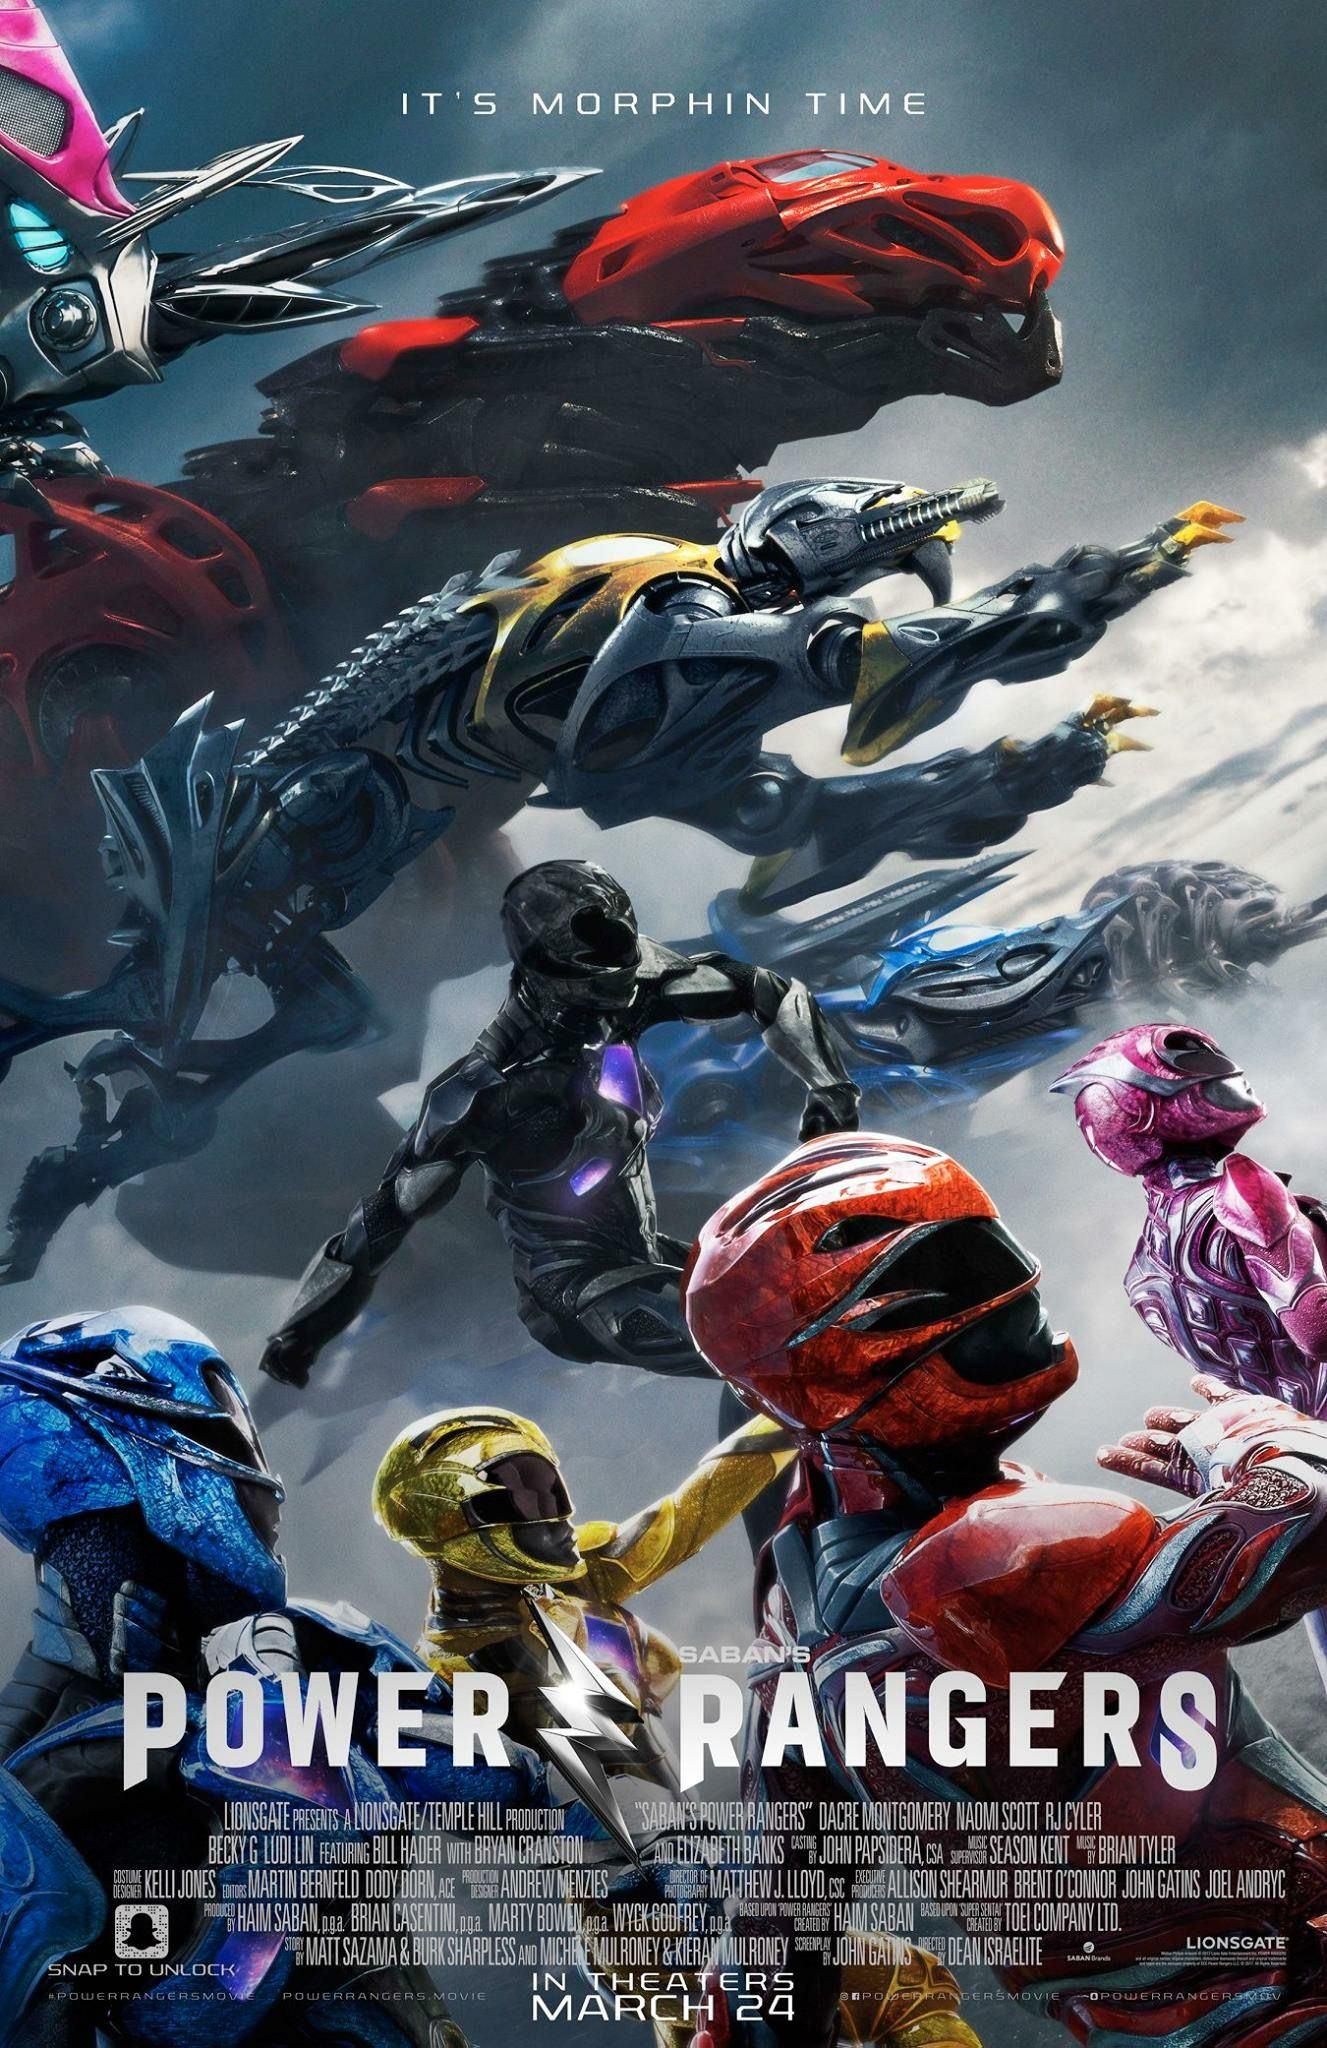 Final poster for Power Rangers